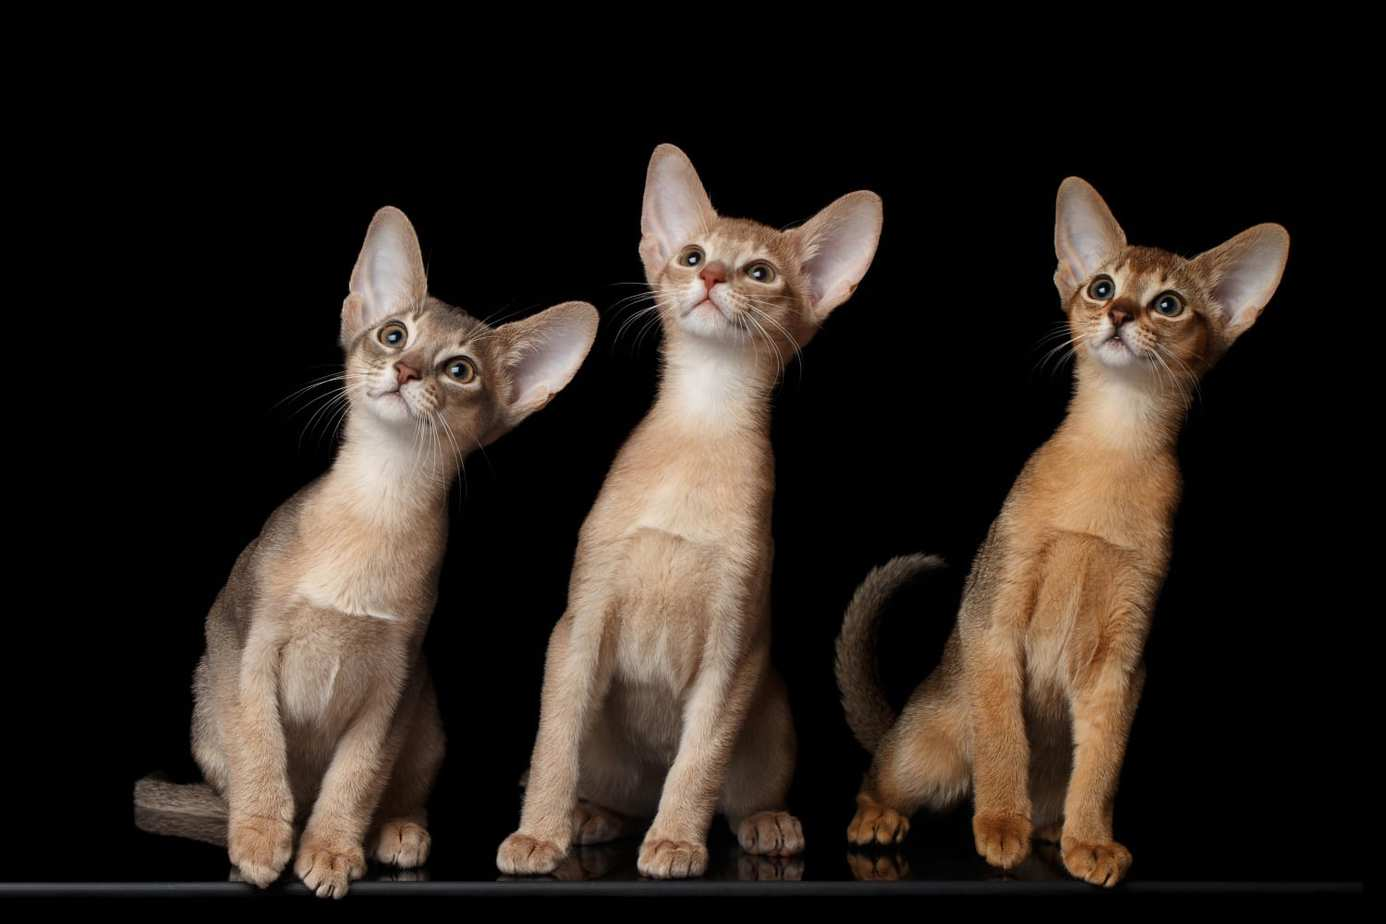 Three Abyssinian kittens